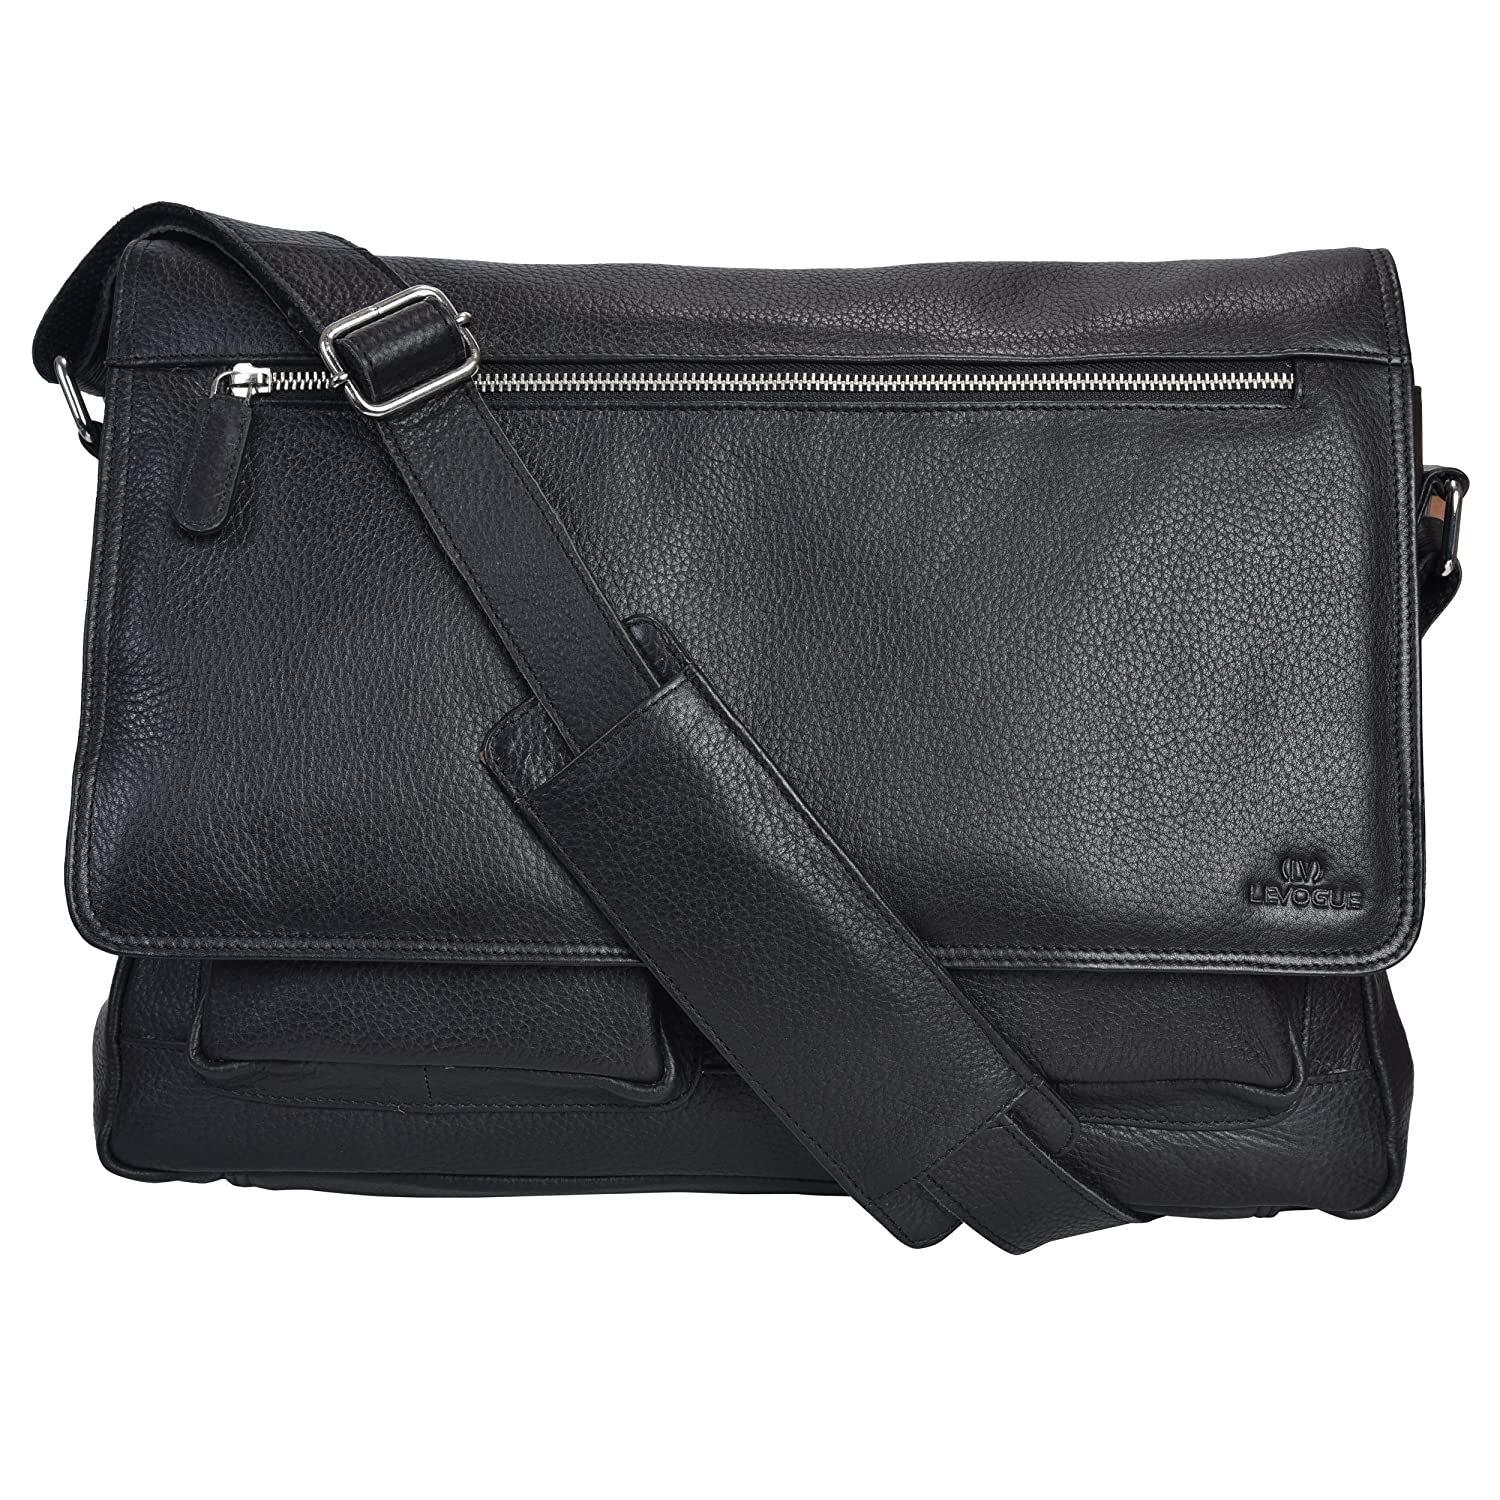 d21cb954c503 Genuine Leather Messenger Bag for Men and Women - 14 inch Laptop ...